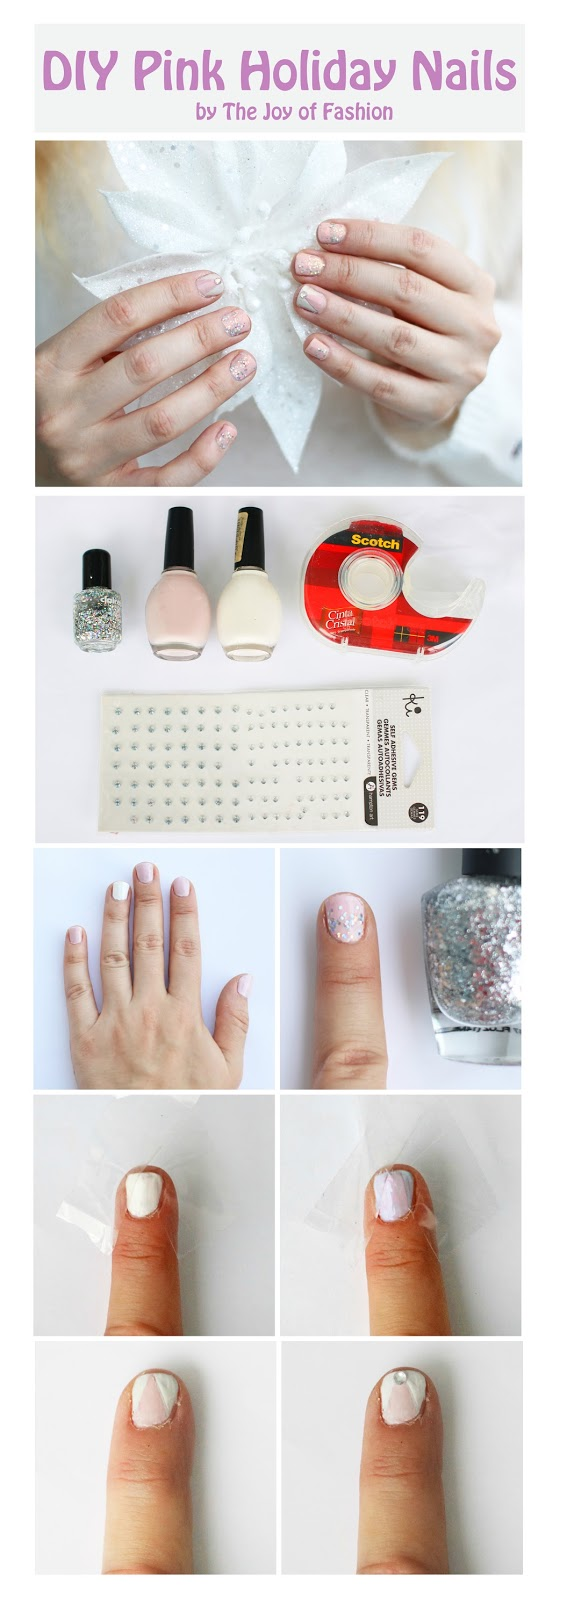 Easy and Cute pink Holiday nails tutorial